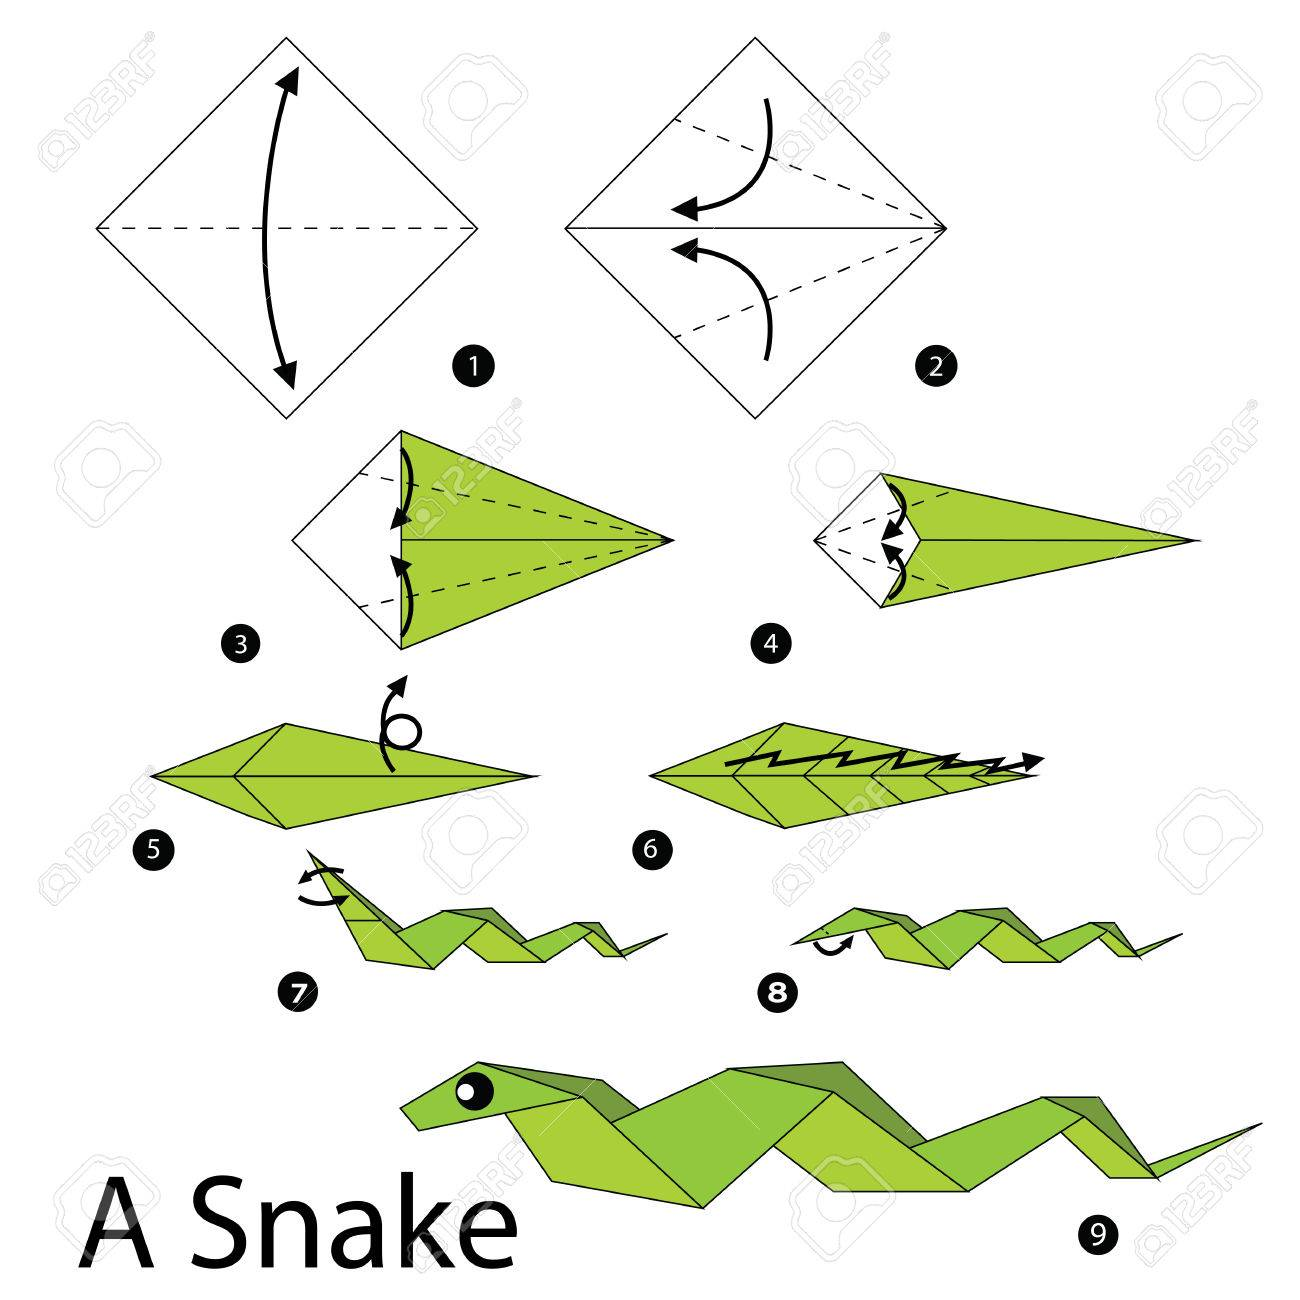 step by step instructions how to make origami A Snake